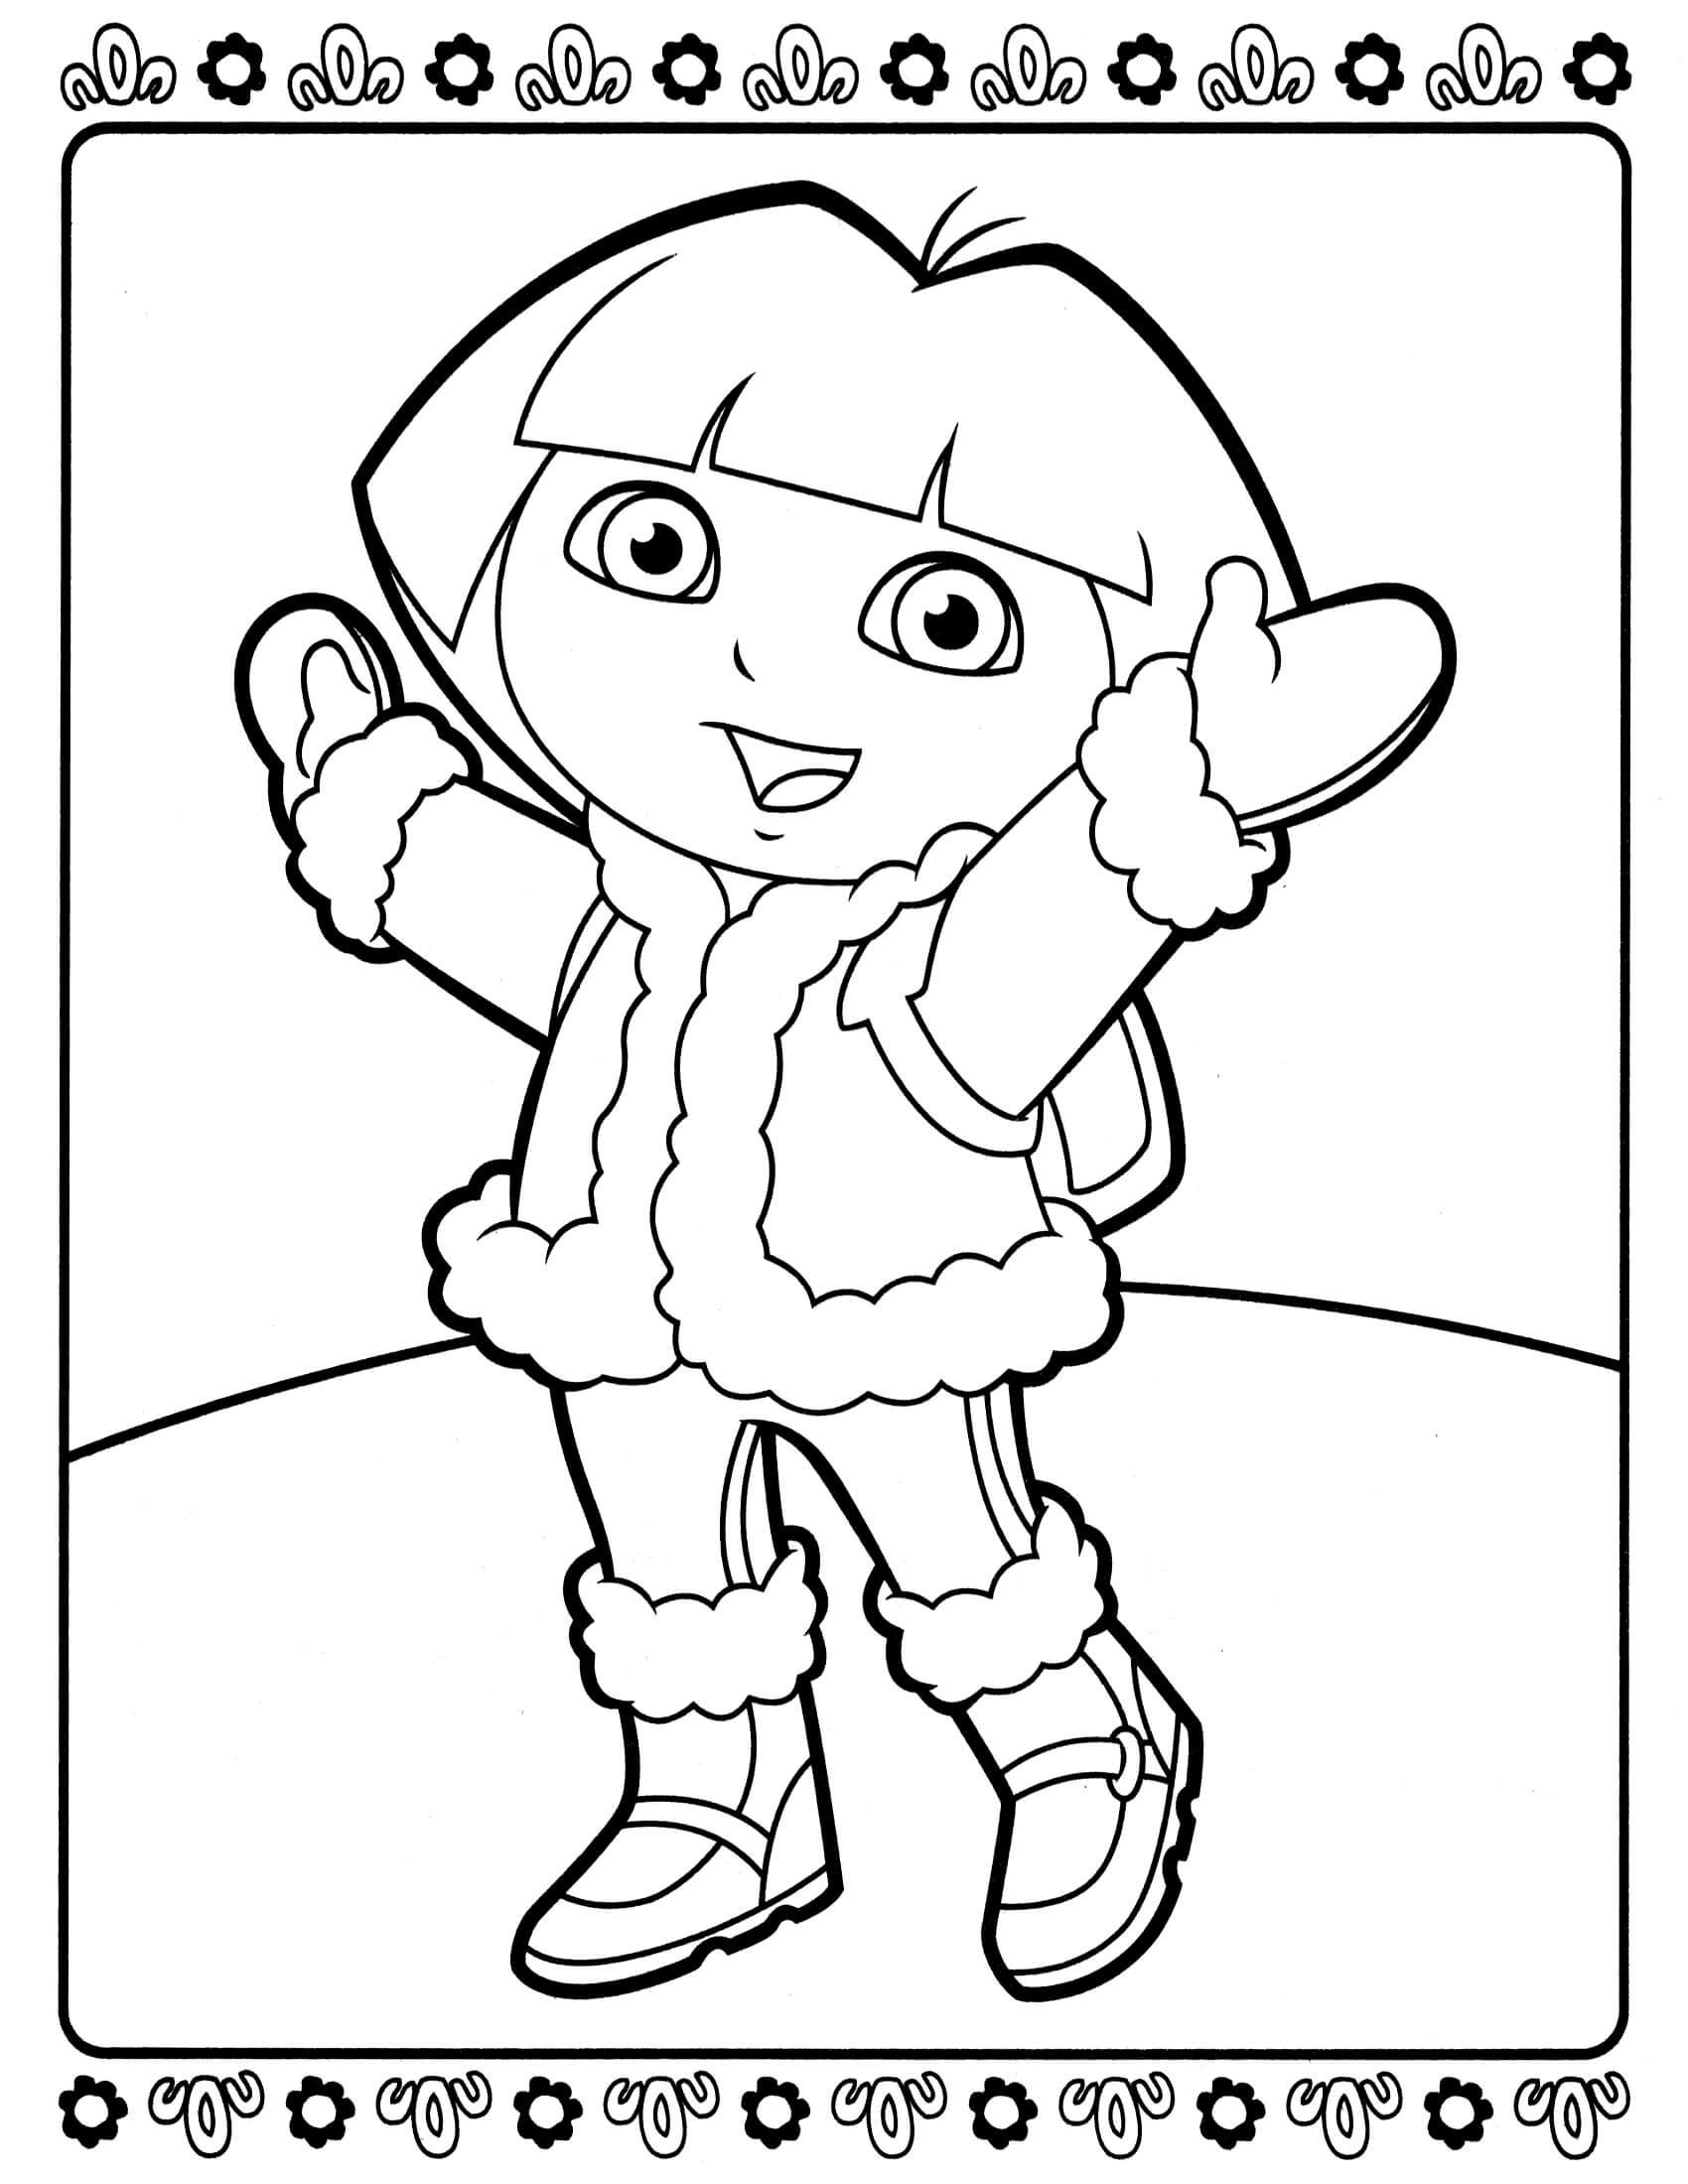 Dora Parties With Santa And Friends Coloring Page Winter Coloring Pages Kids Coloring Books Winter Coloring